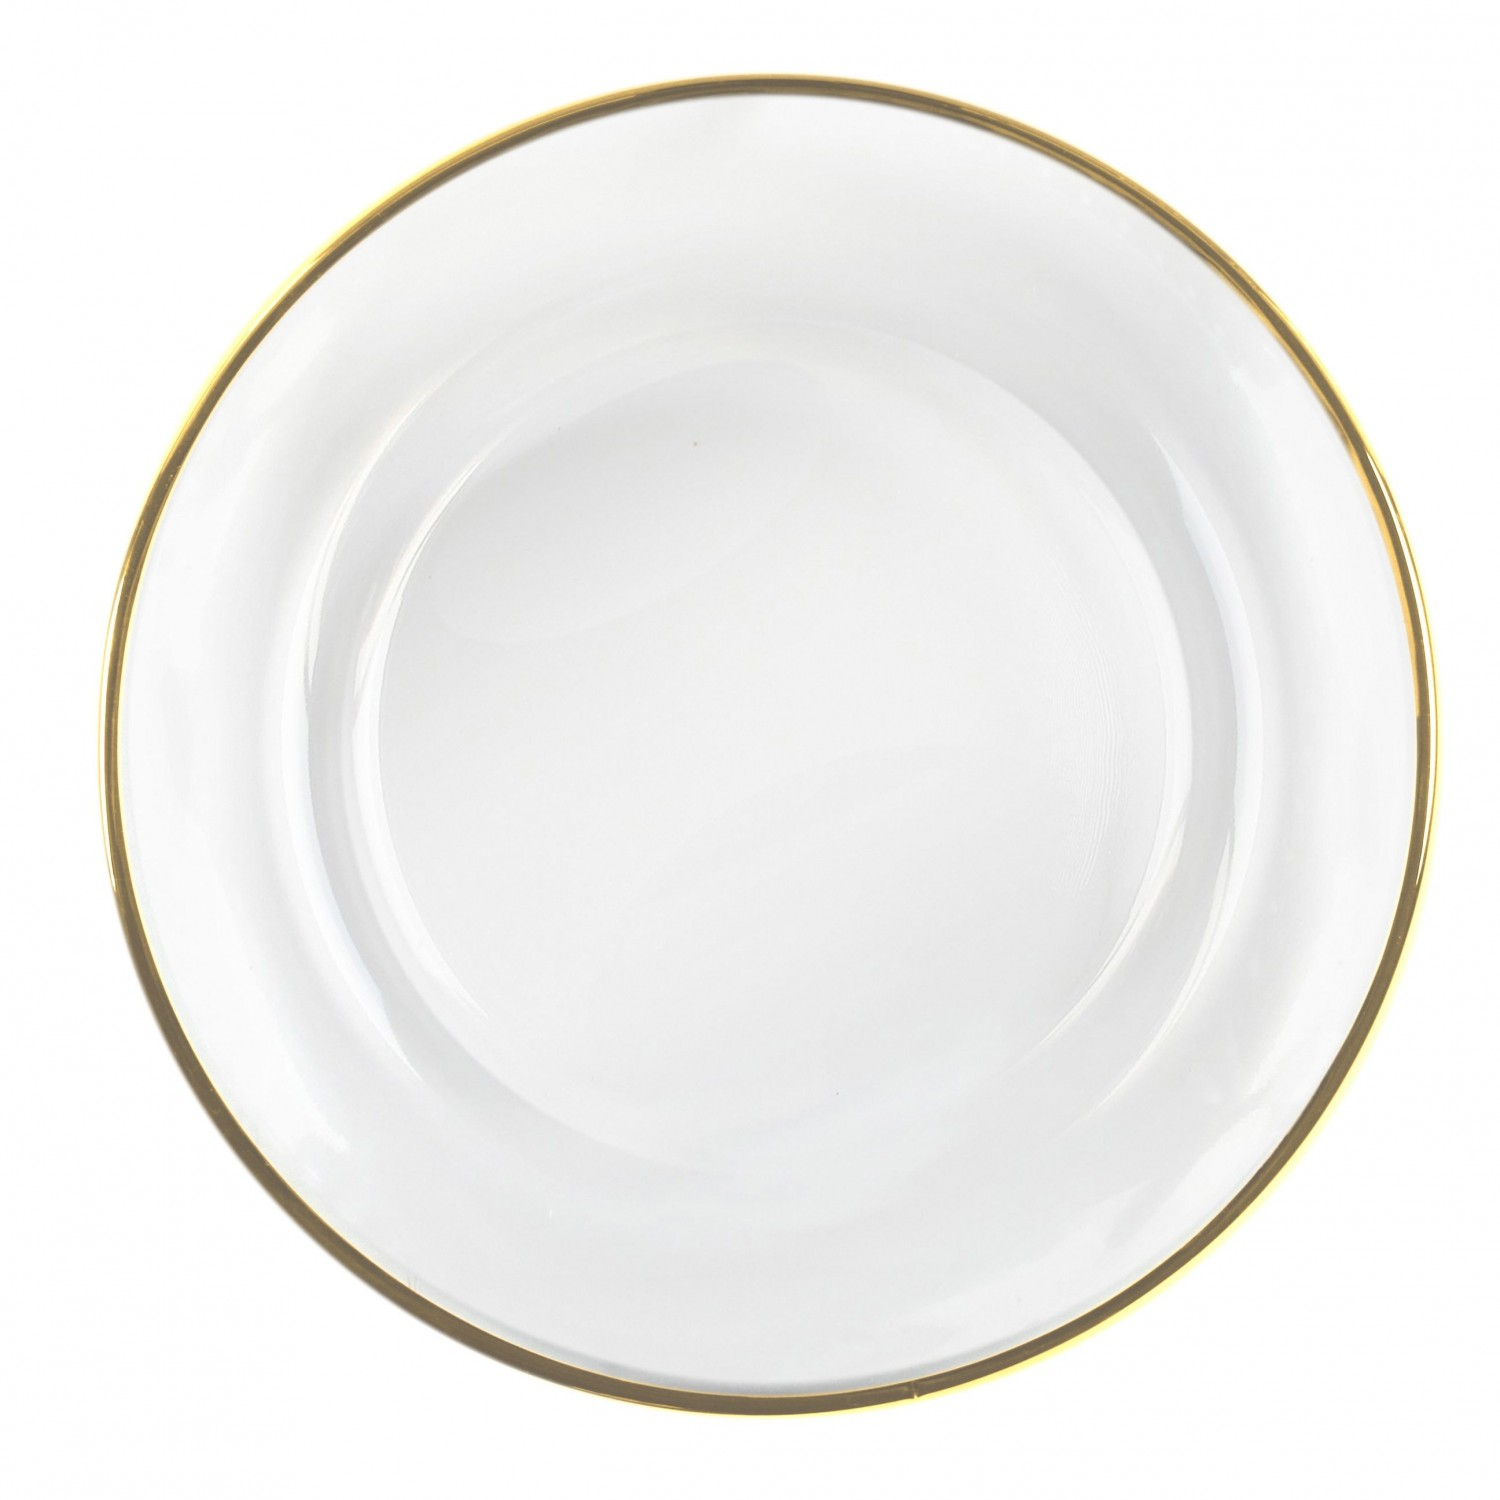 The Jay Companies 1900002 Round Gold Rim Glass Charger Plate 13""